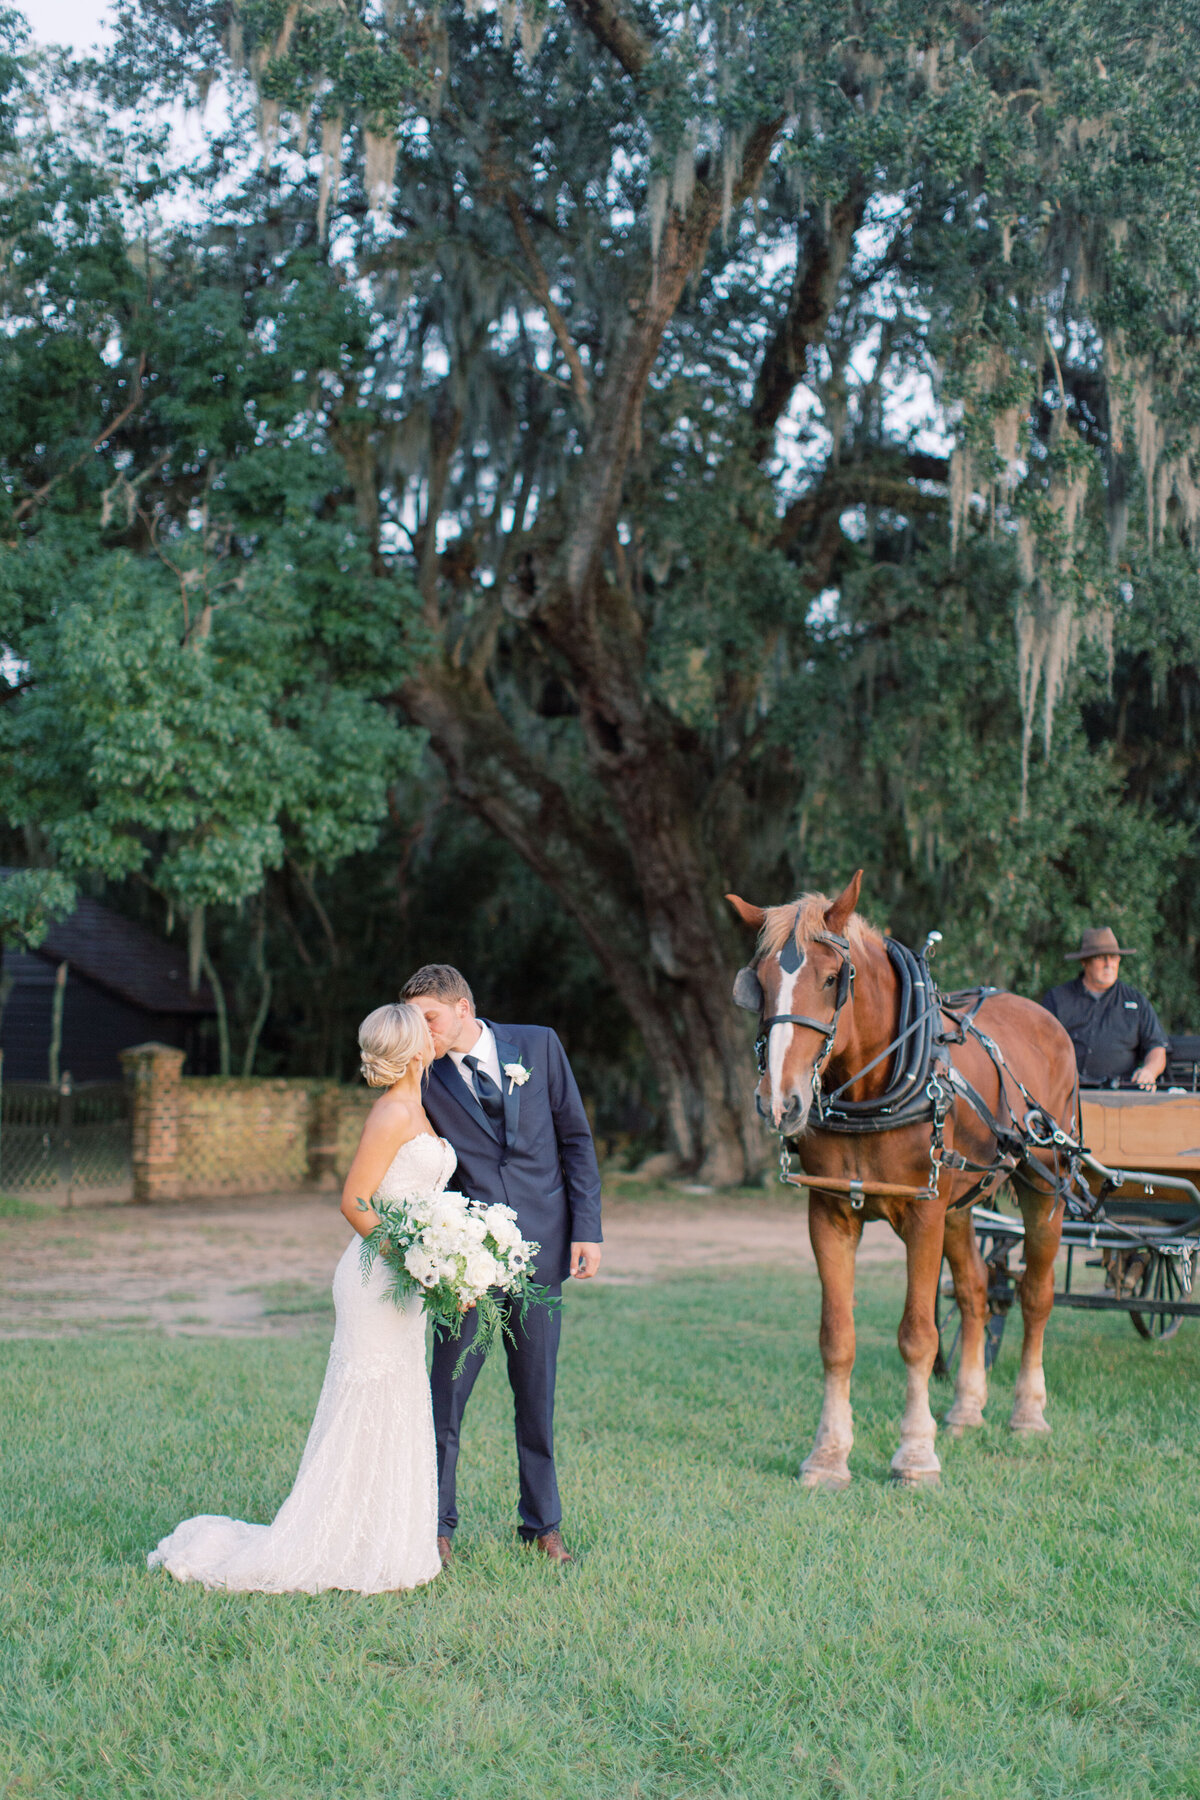 Melton_Wedding__Middleton_Place_Plantation_Charleston_South_Carolina_Jacksonville_Florida_Devon_Donnahoo_Photography__0836